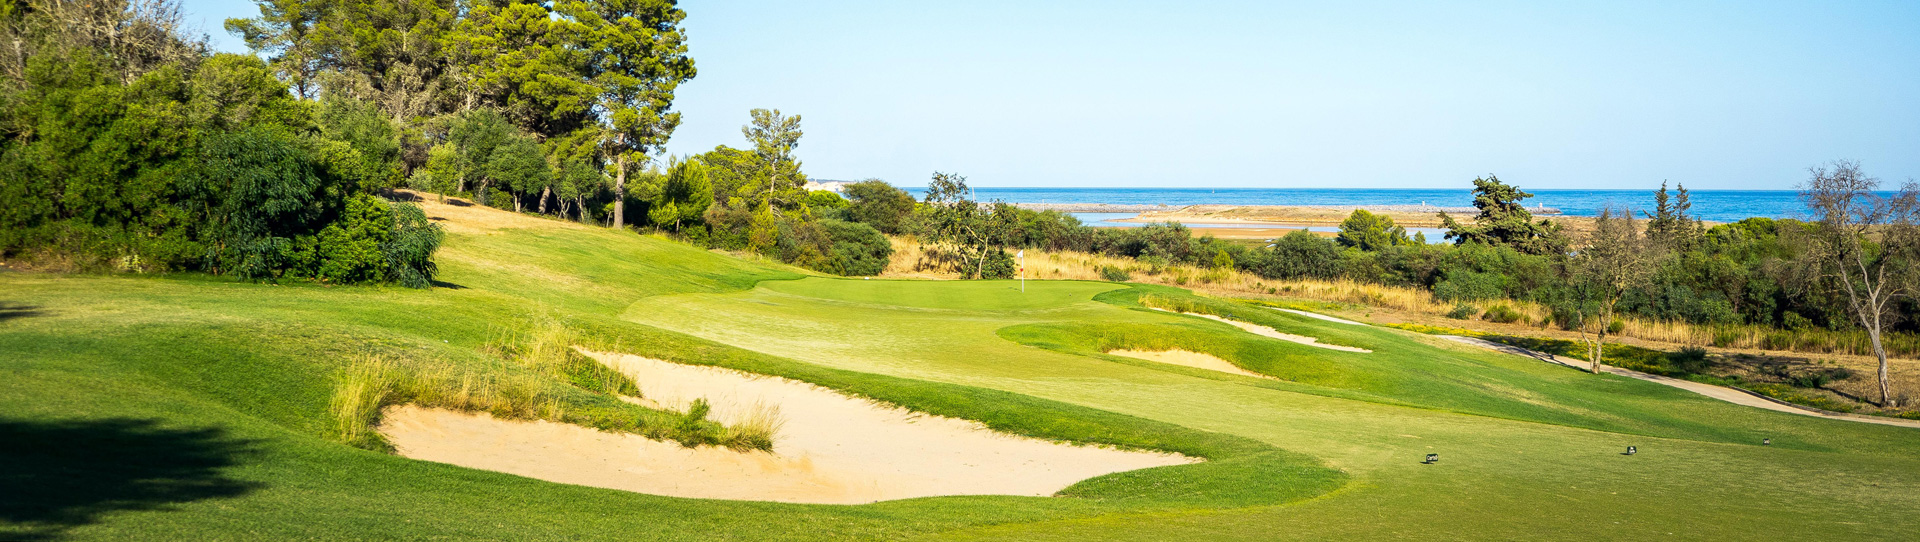 Amendoeira & Palmares Experience - Photo 1